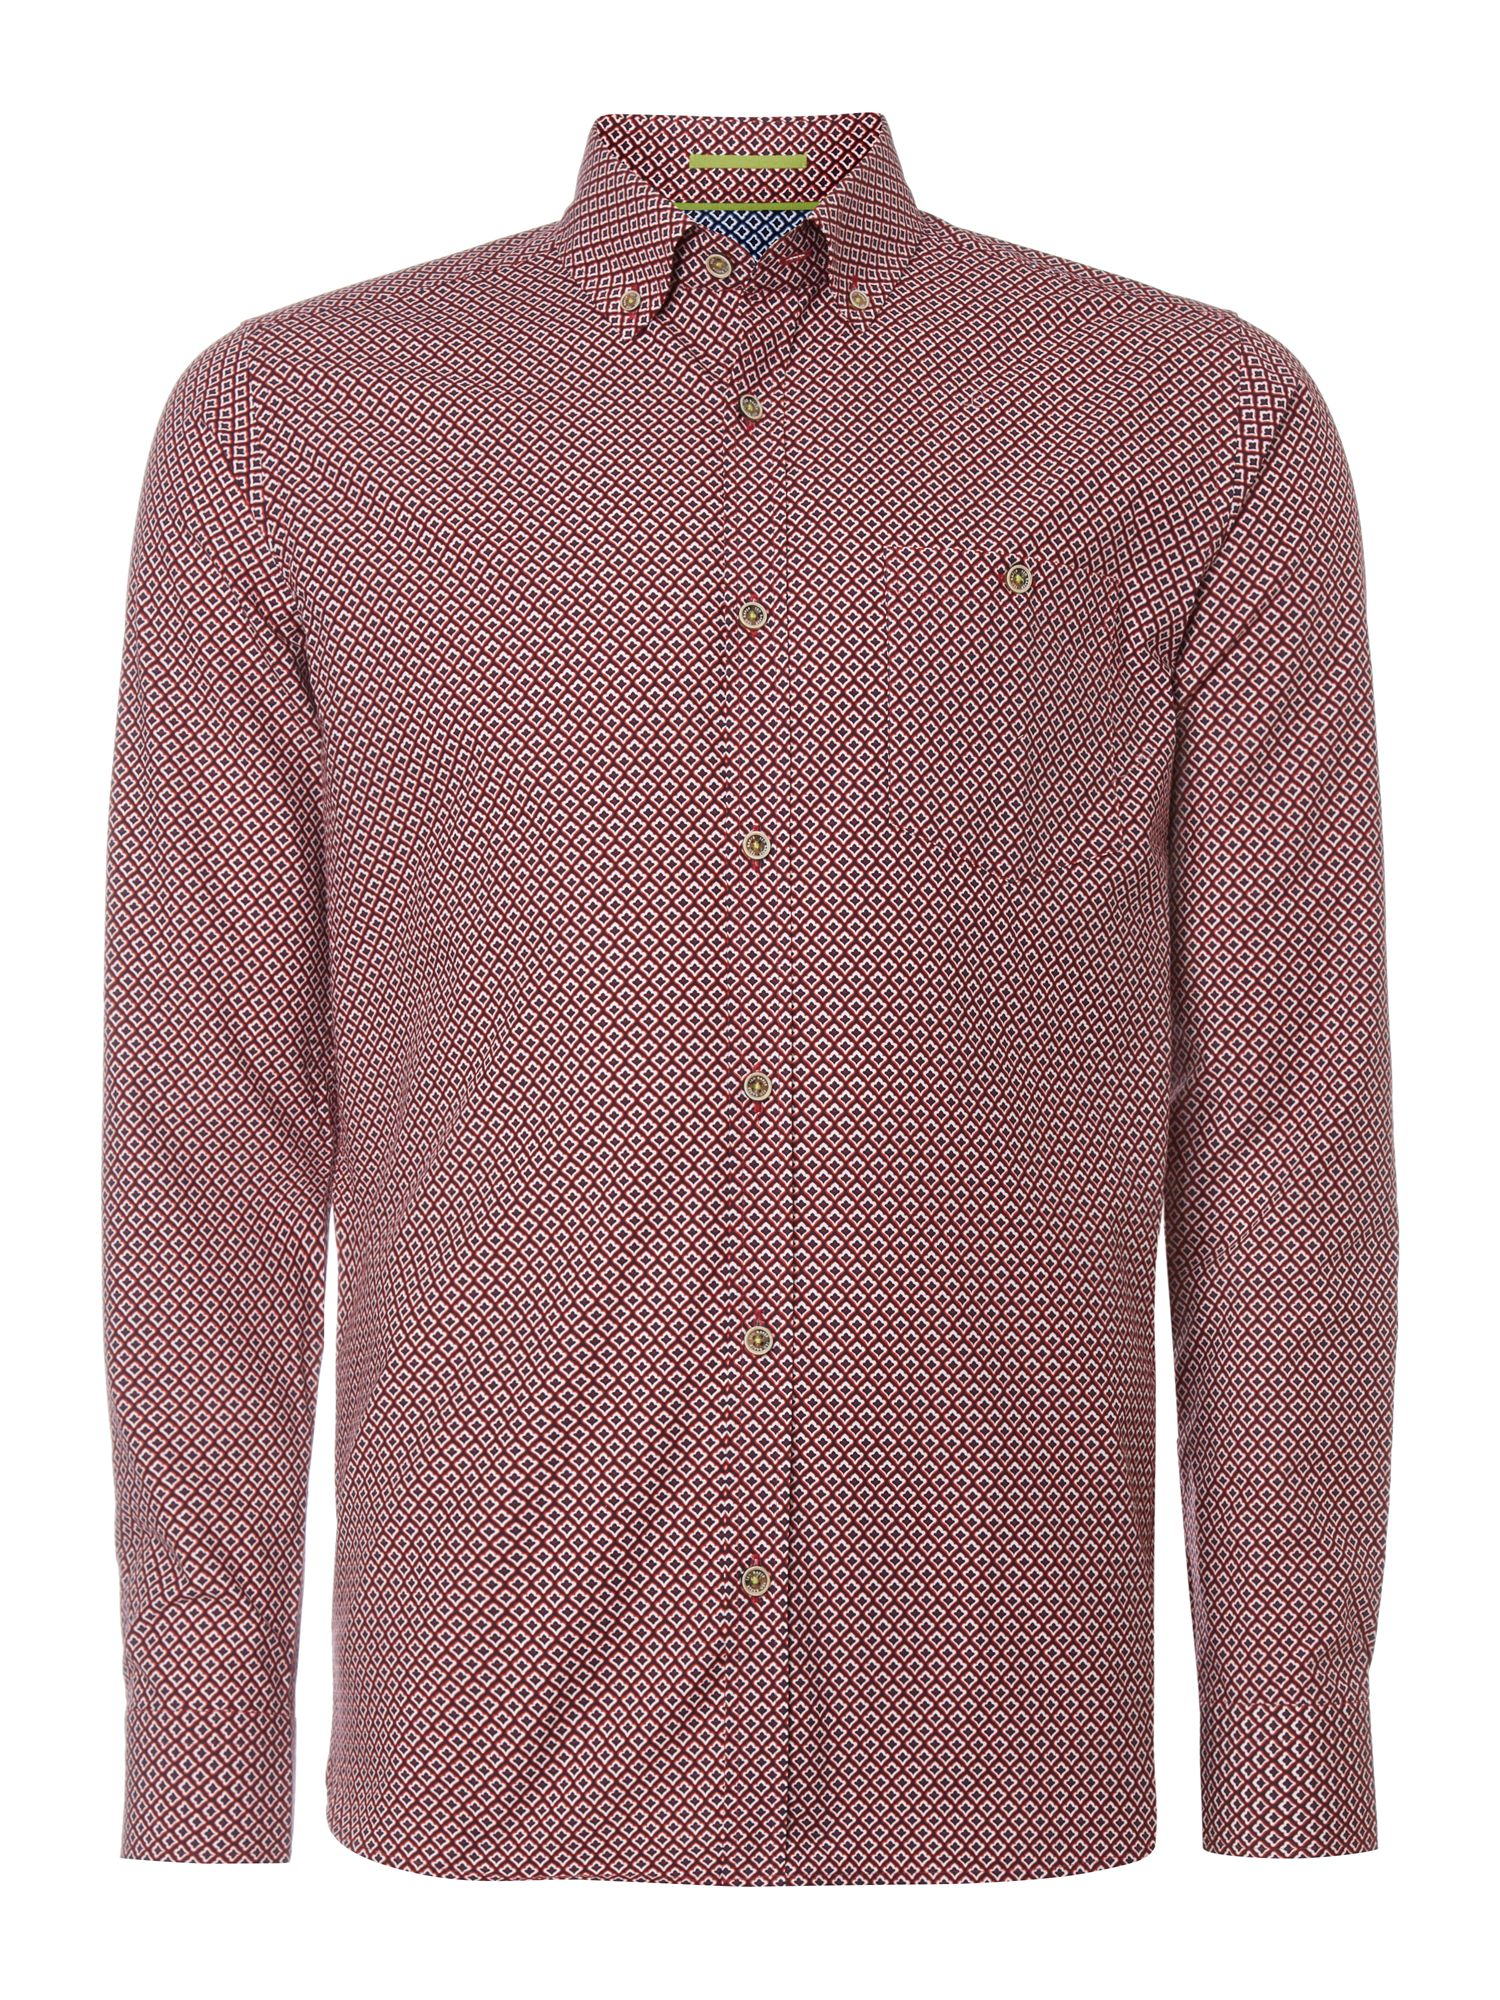 Jenson grois grain collar polo